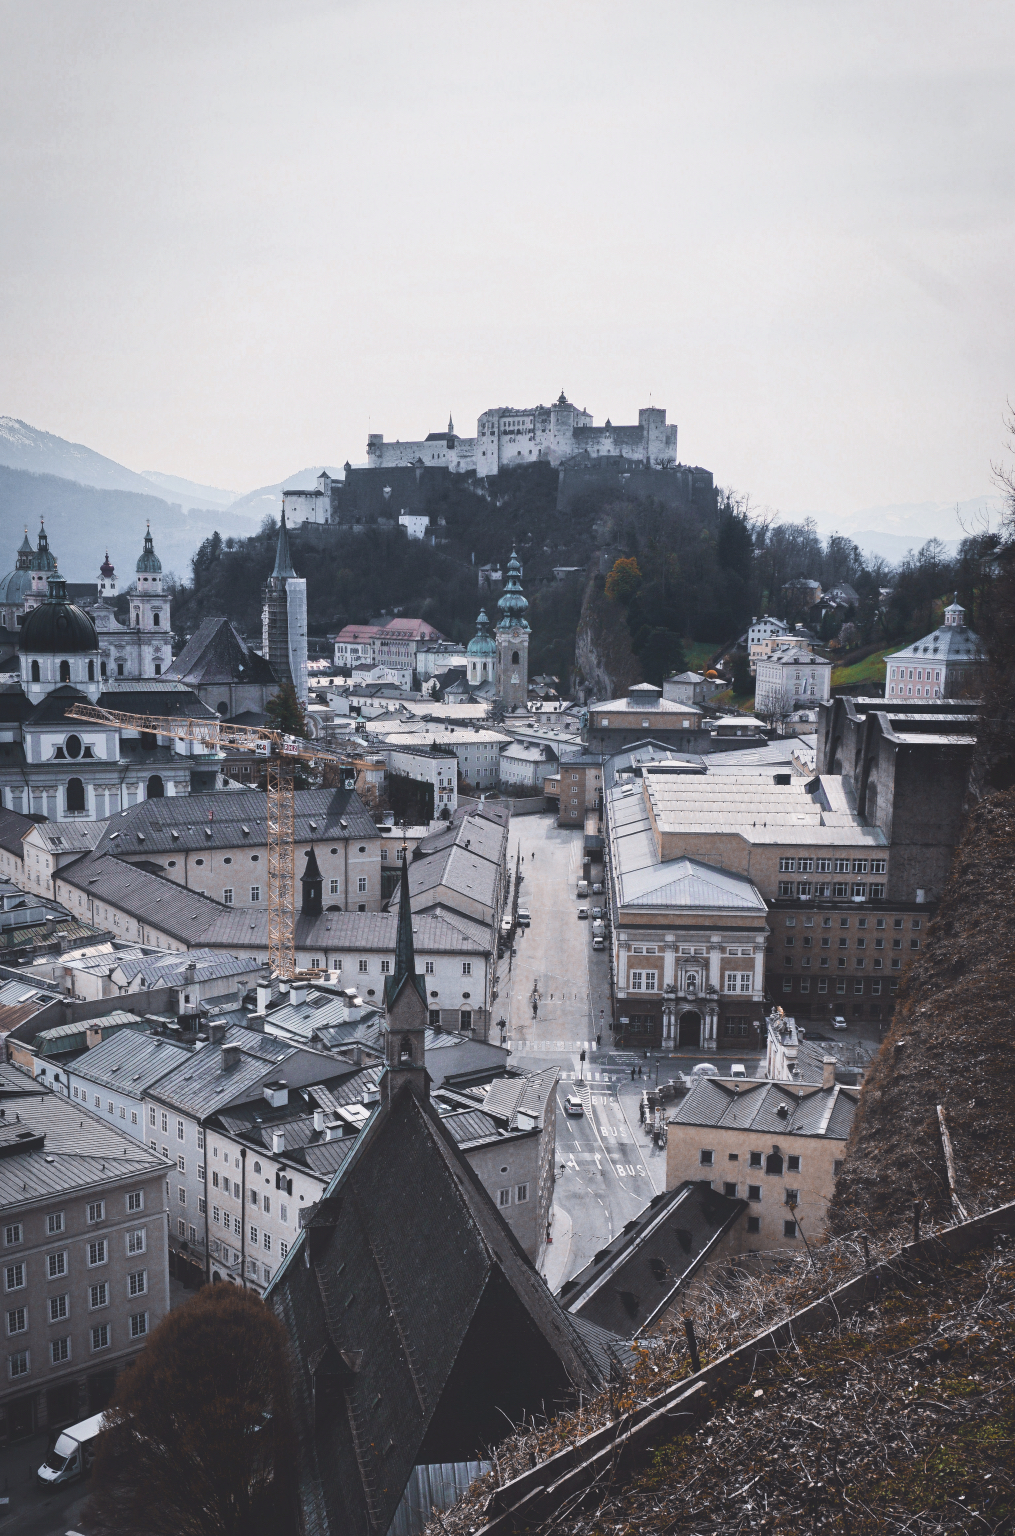 View from the Museum/Cafe Terrace towards the Salzburg Fortress